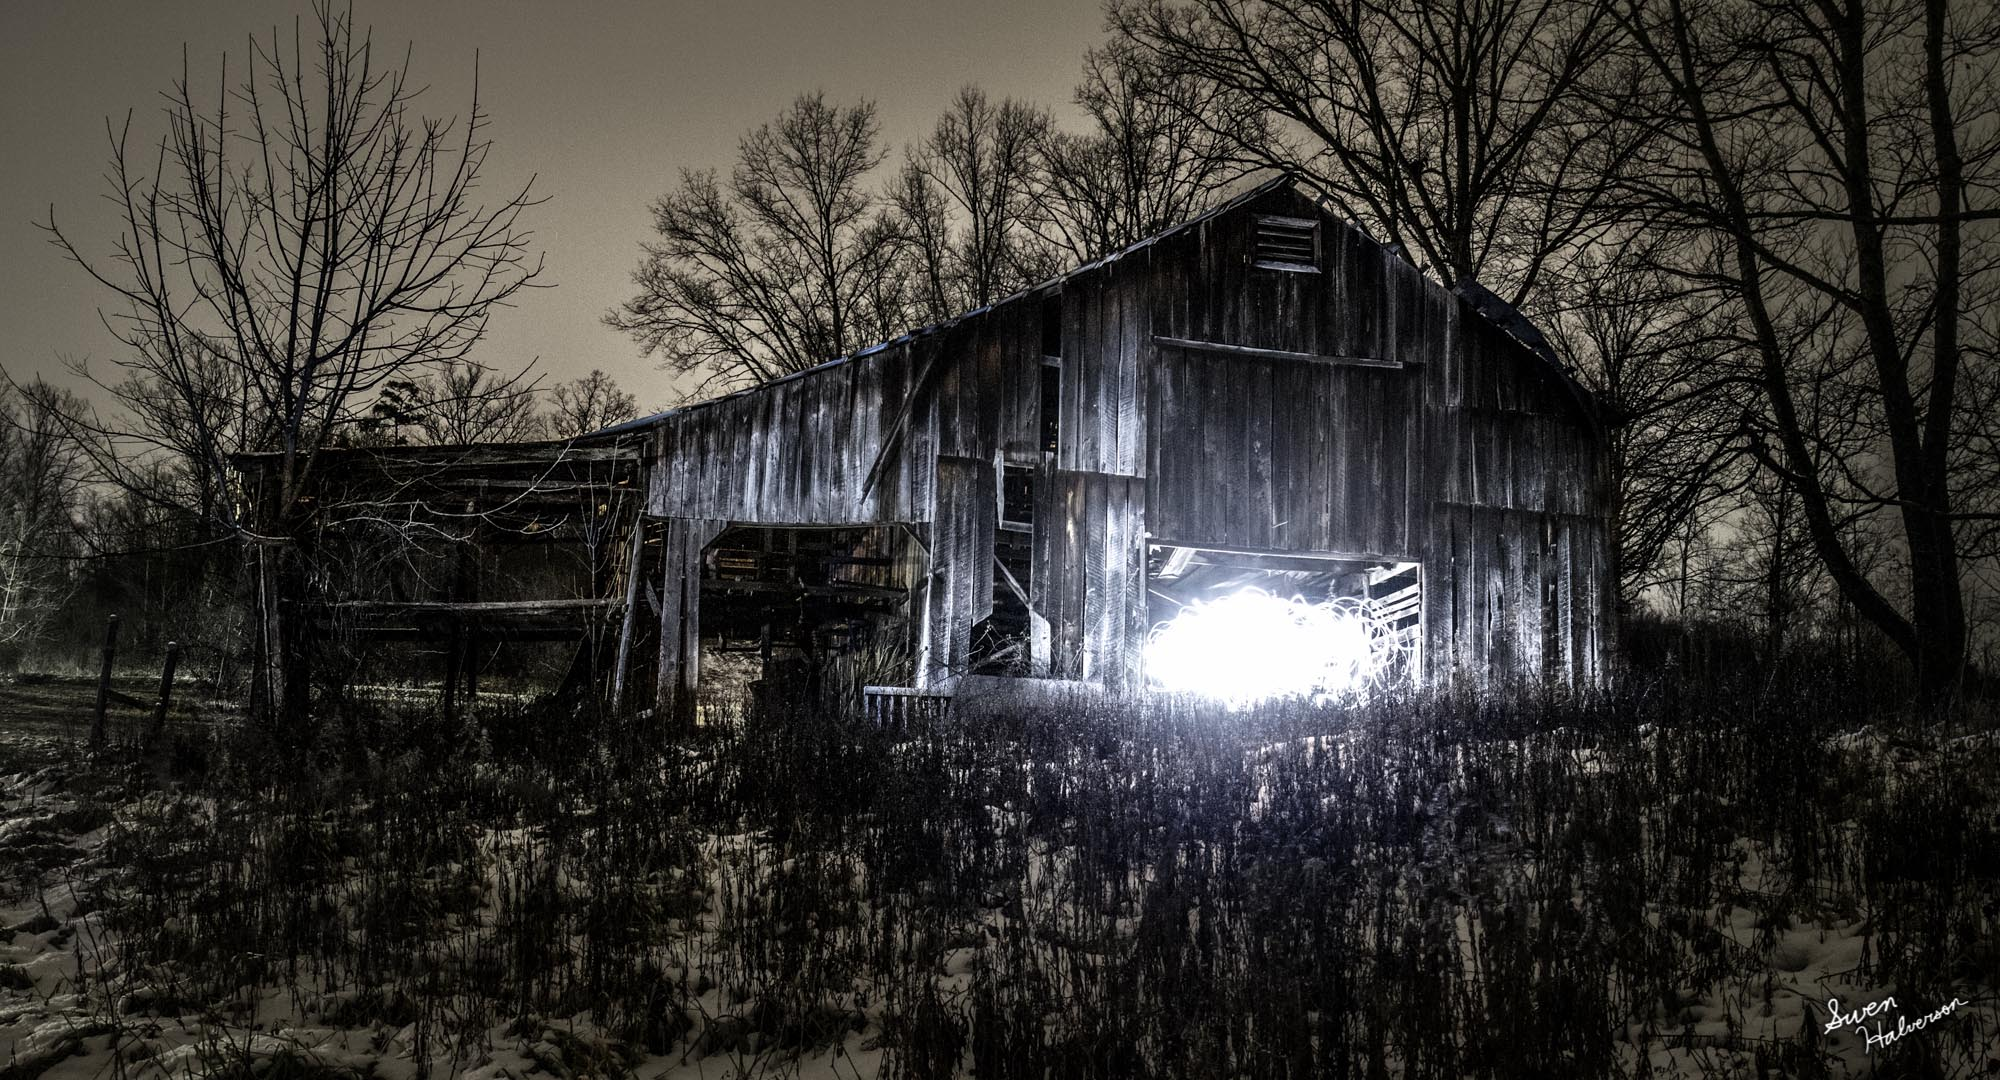 Theme: Light Painting Title: Wisps In The Barn